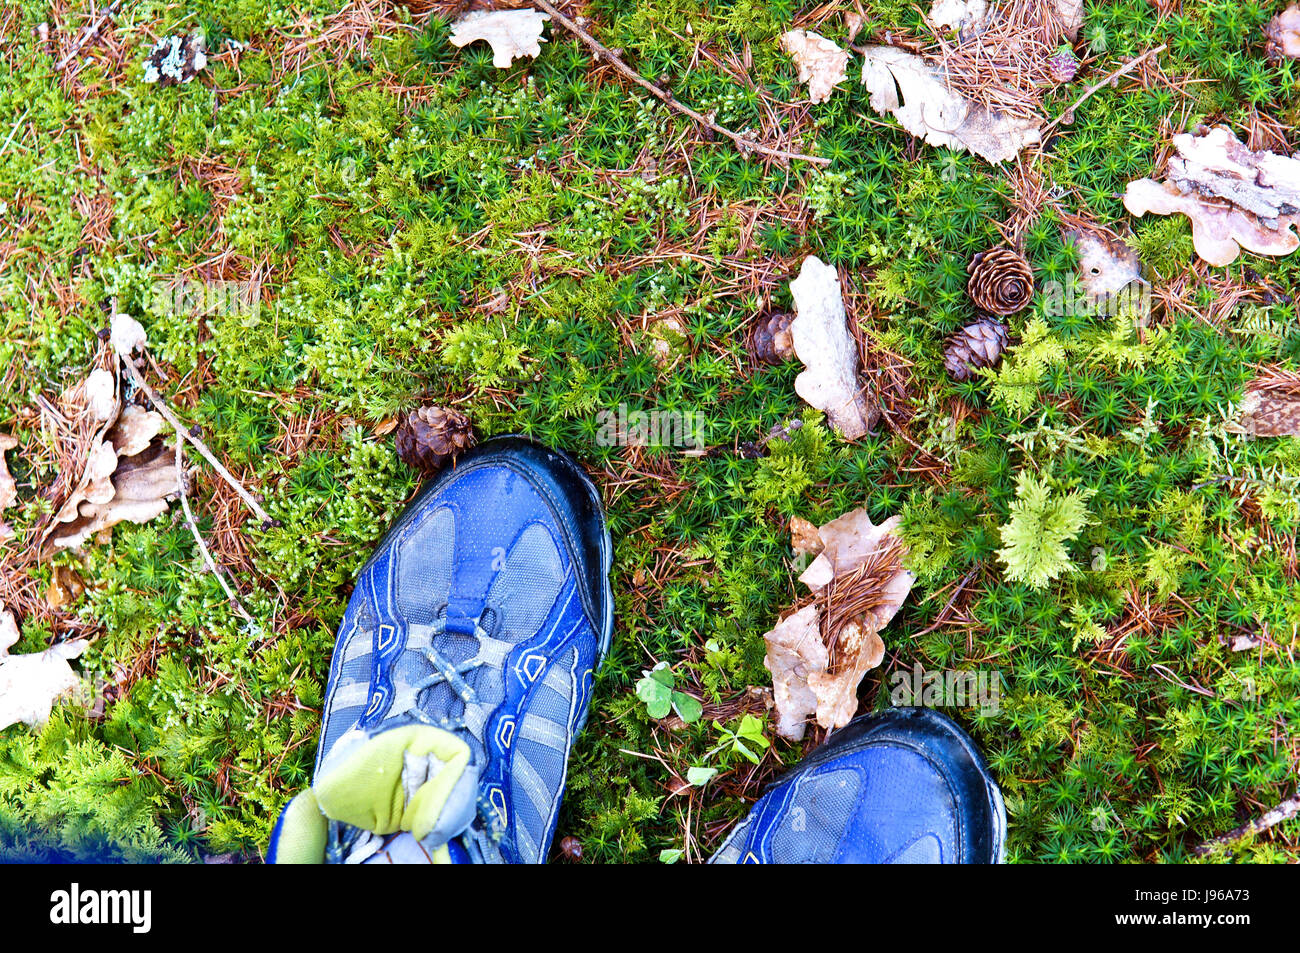 standing on the stone covered with green sphagnum moss - Stock Image